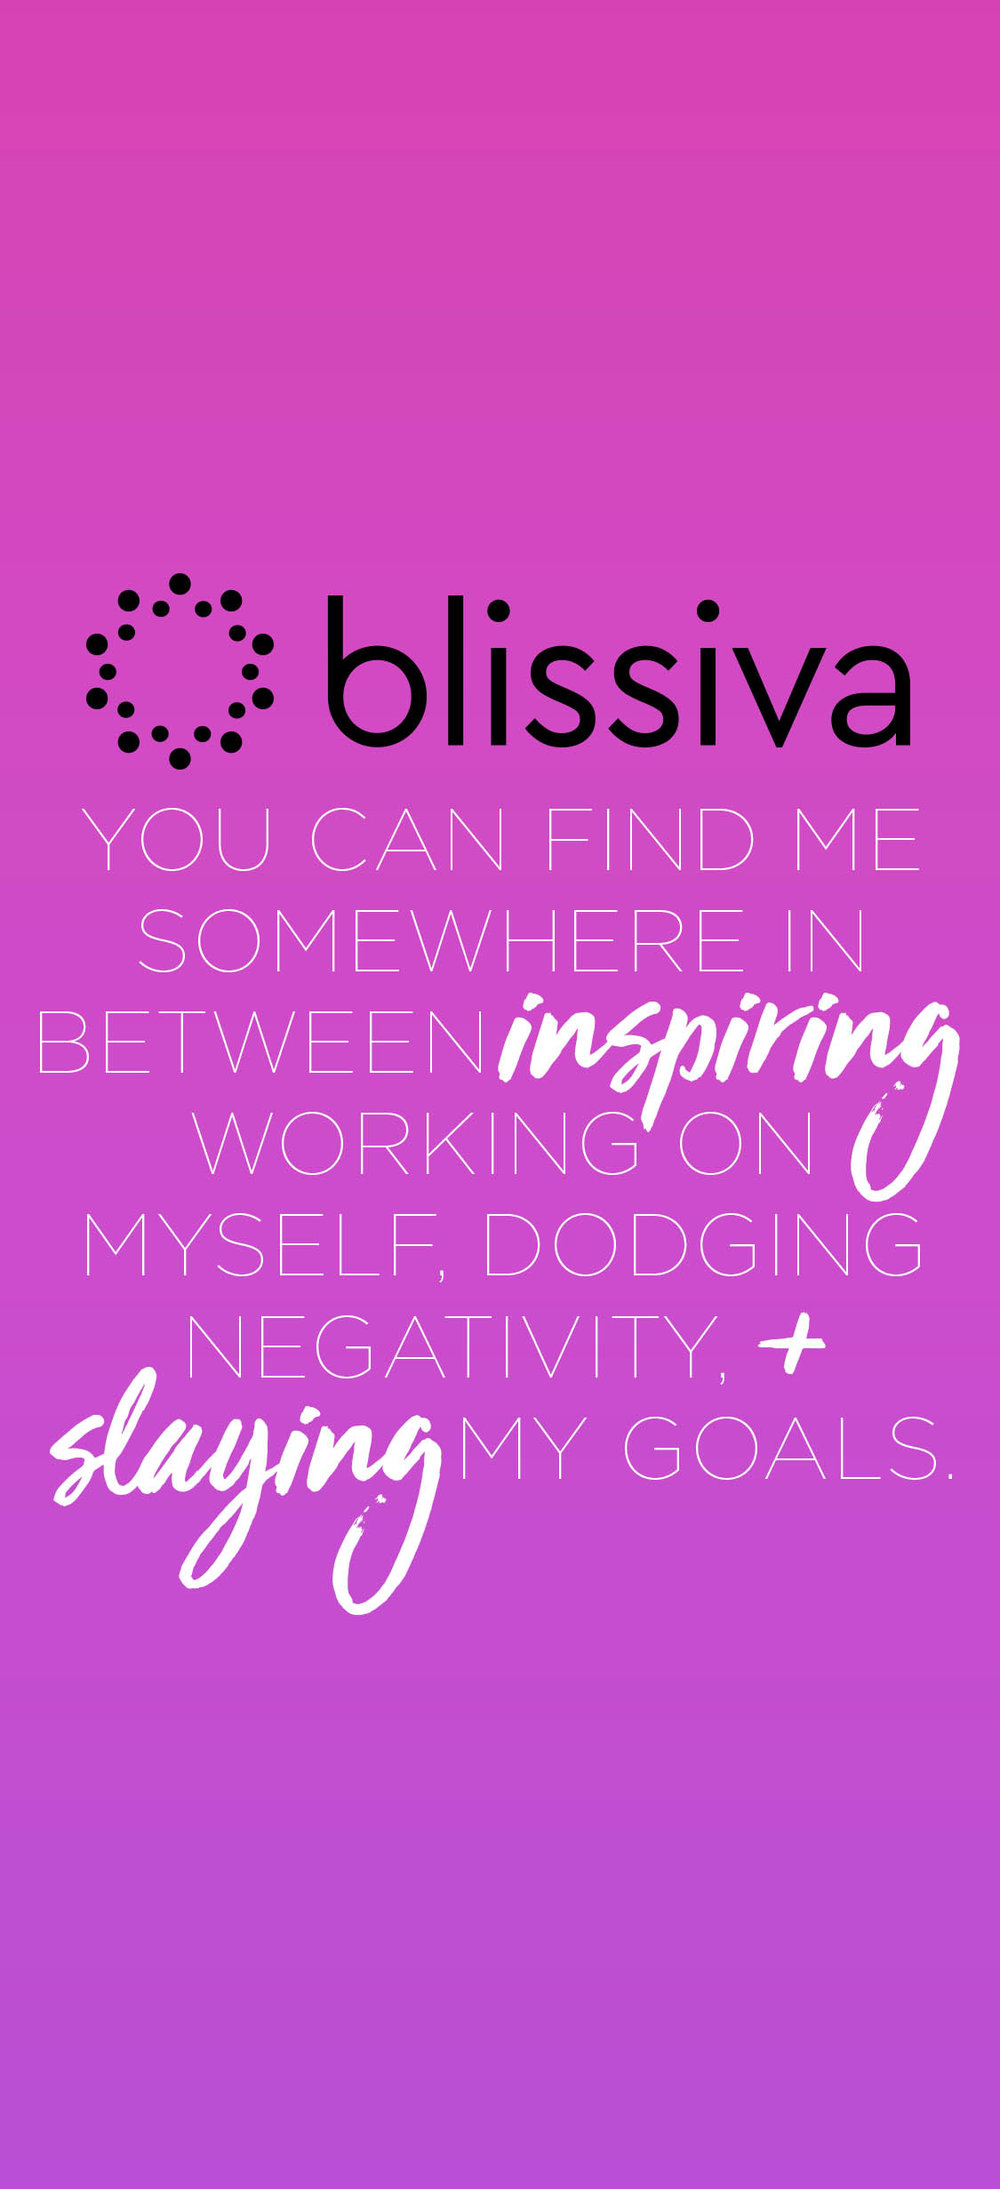 05 Blissiva iPhone — Inspiring.jpg